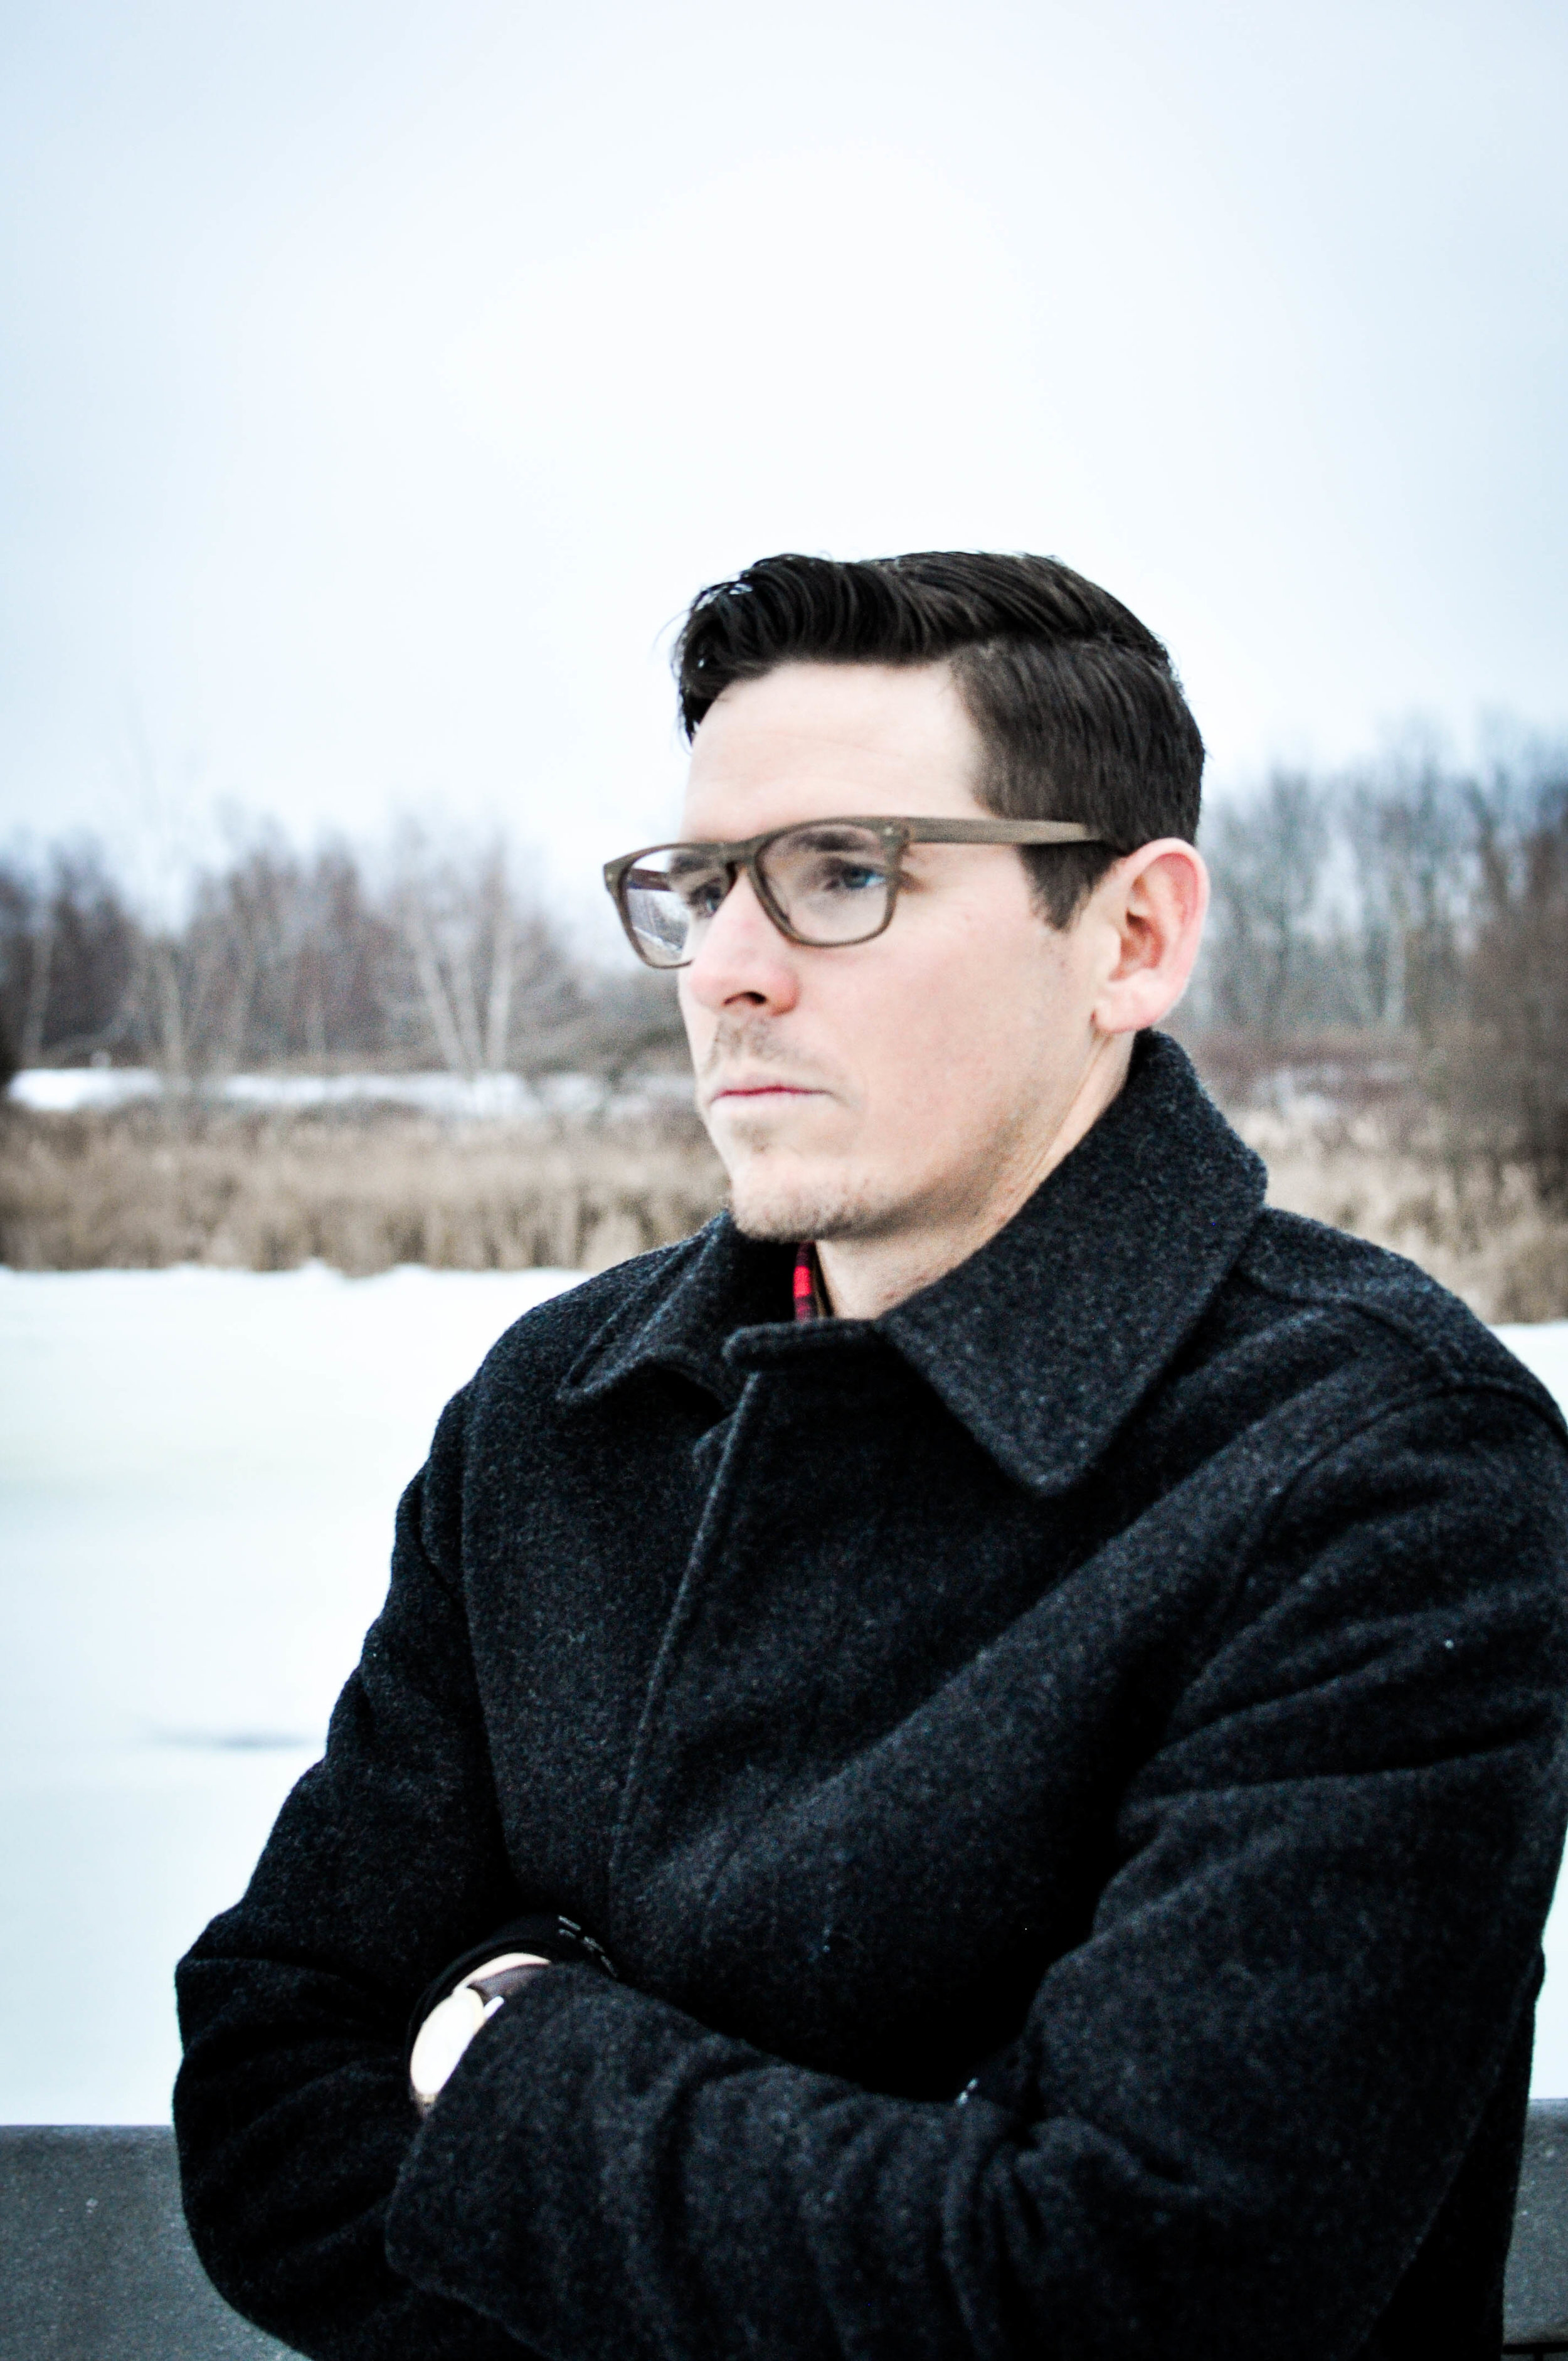 Man with glasses in snow